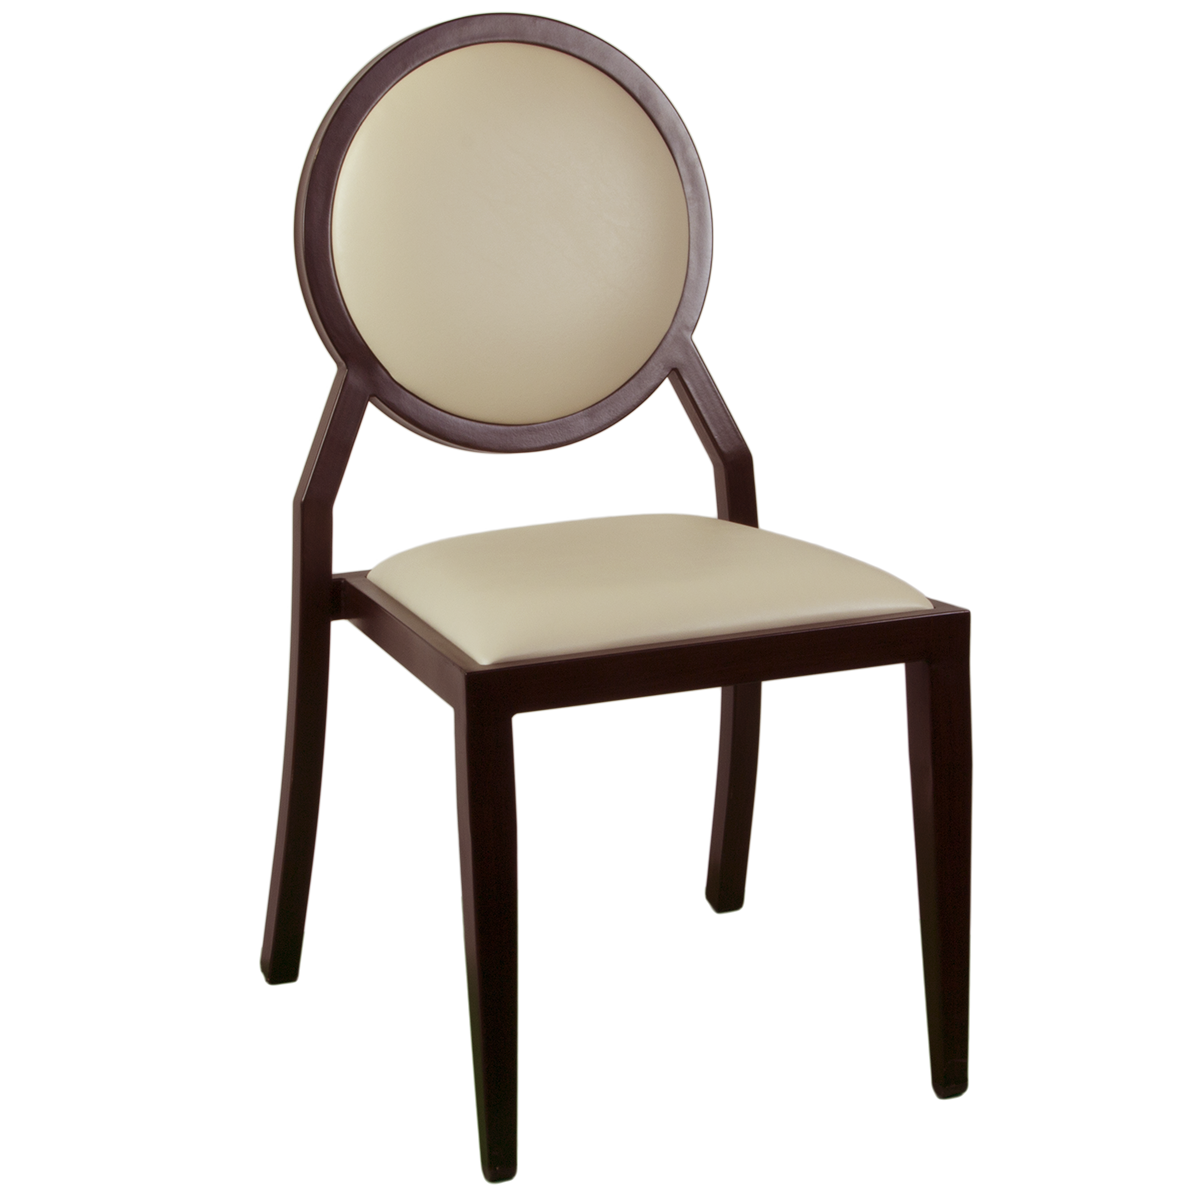 Chairs : Wood-Look Stacking Round Back Chair